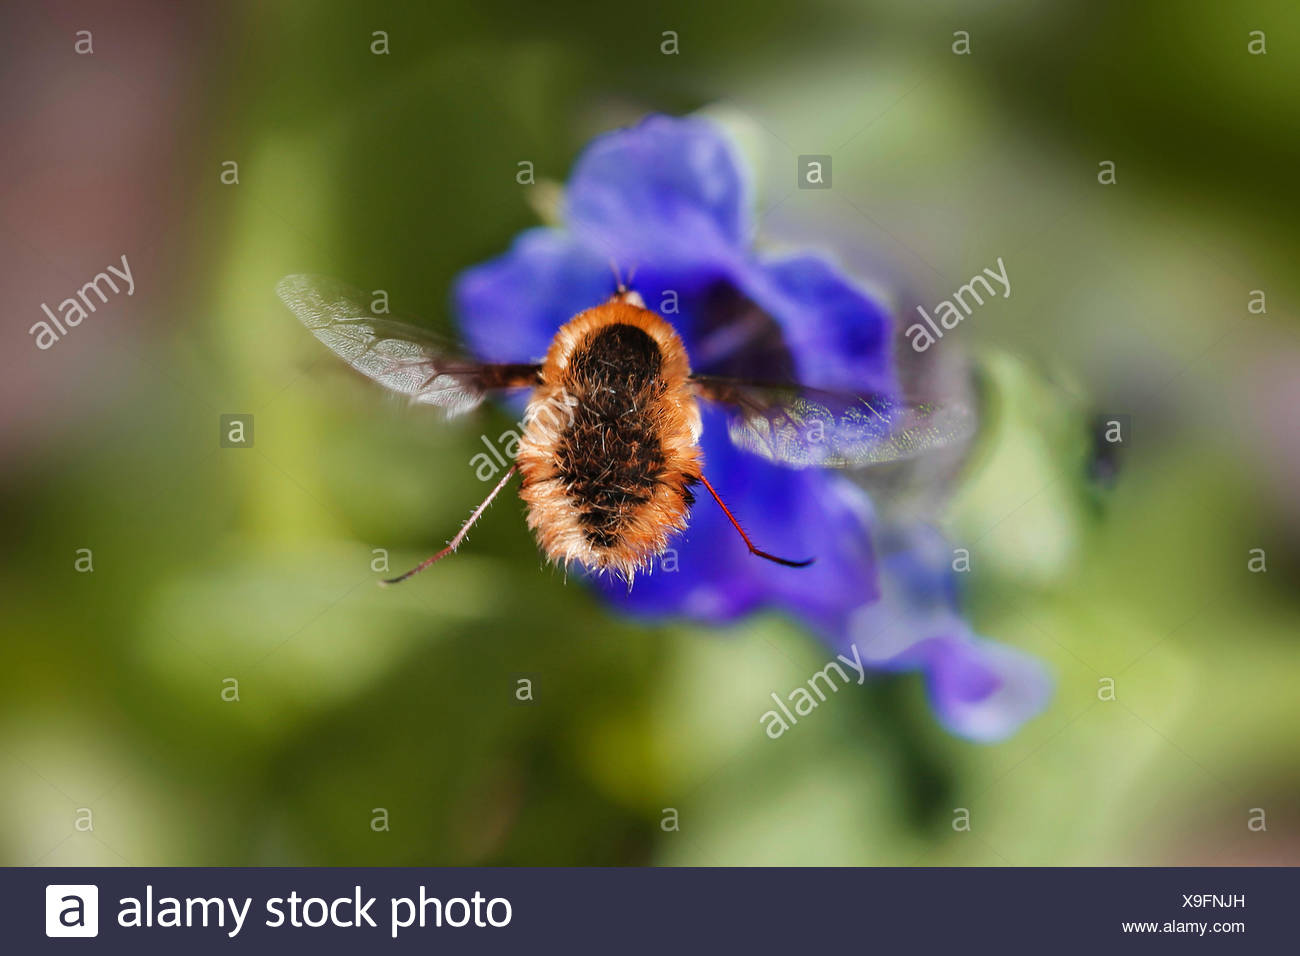 Large bee-fly (Bombylius major), on a blue flower, Germany - Stock Image